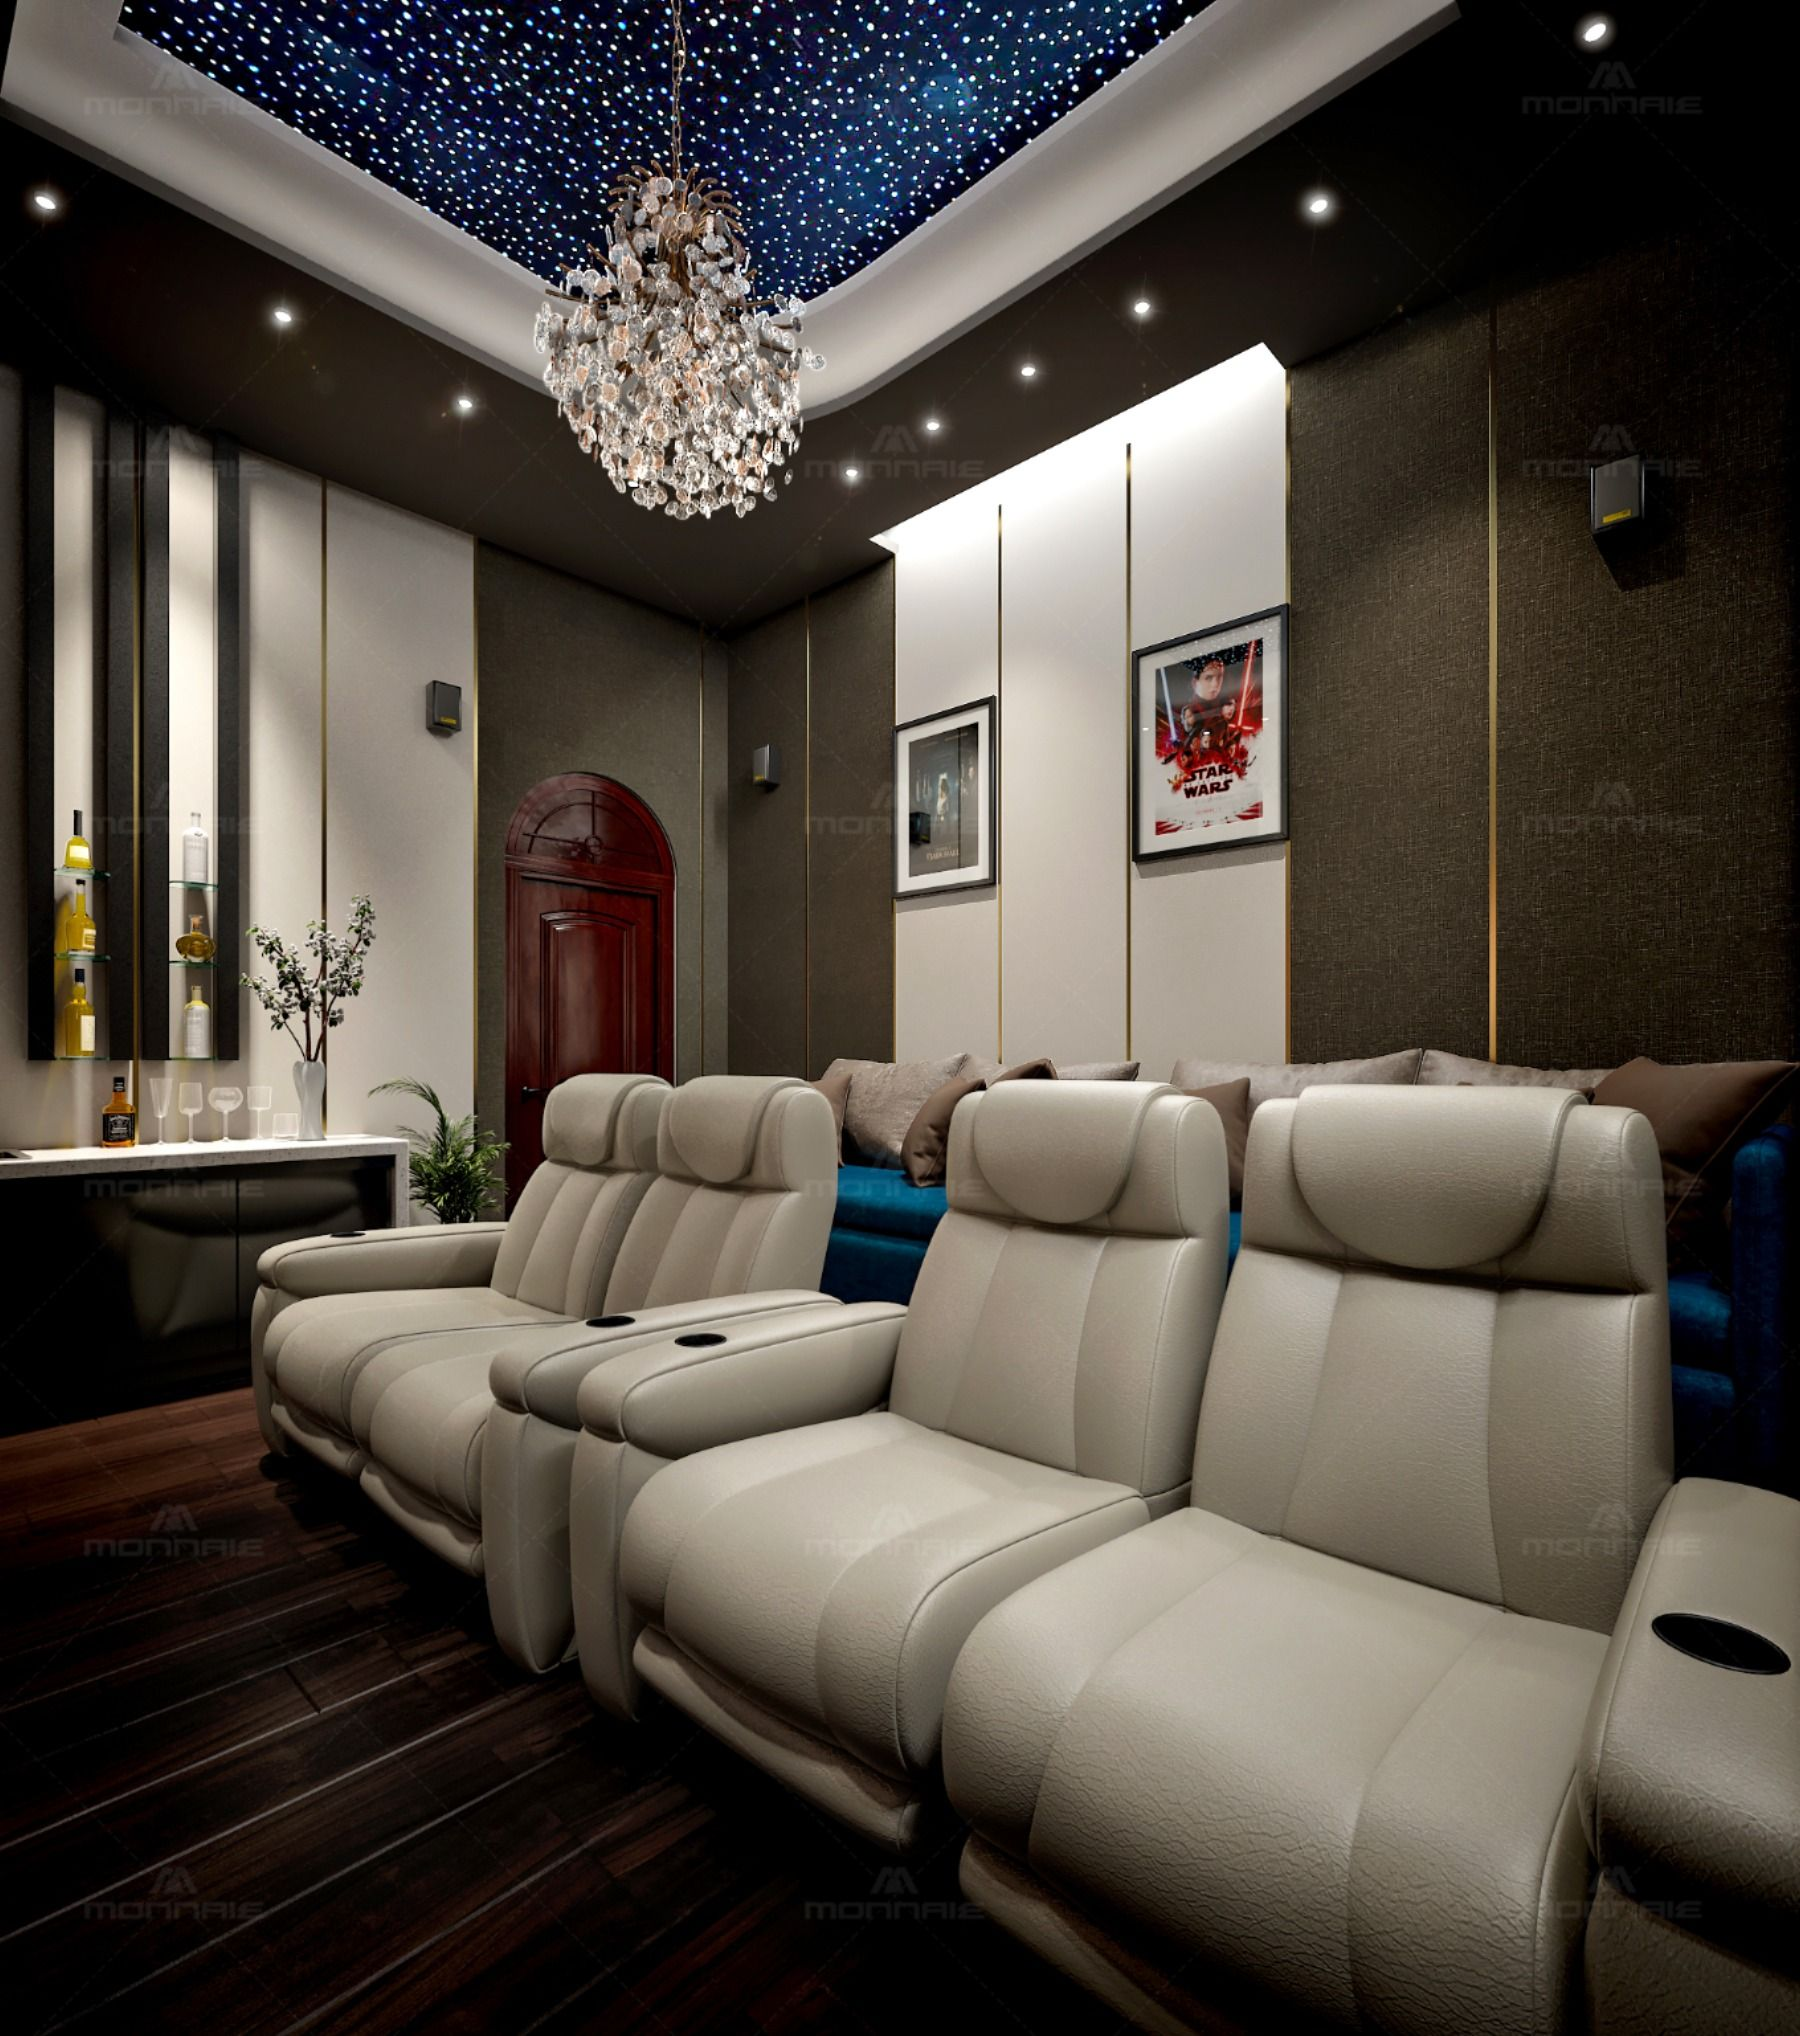 Home Theatre Design Ideas Have Become An Integral Part Of